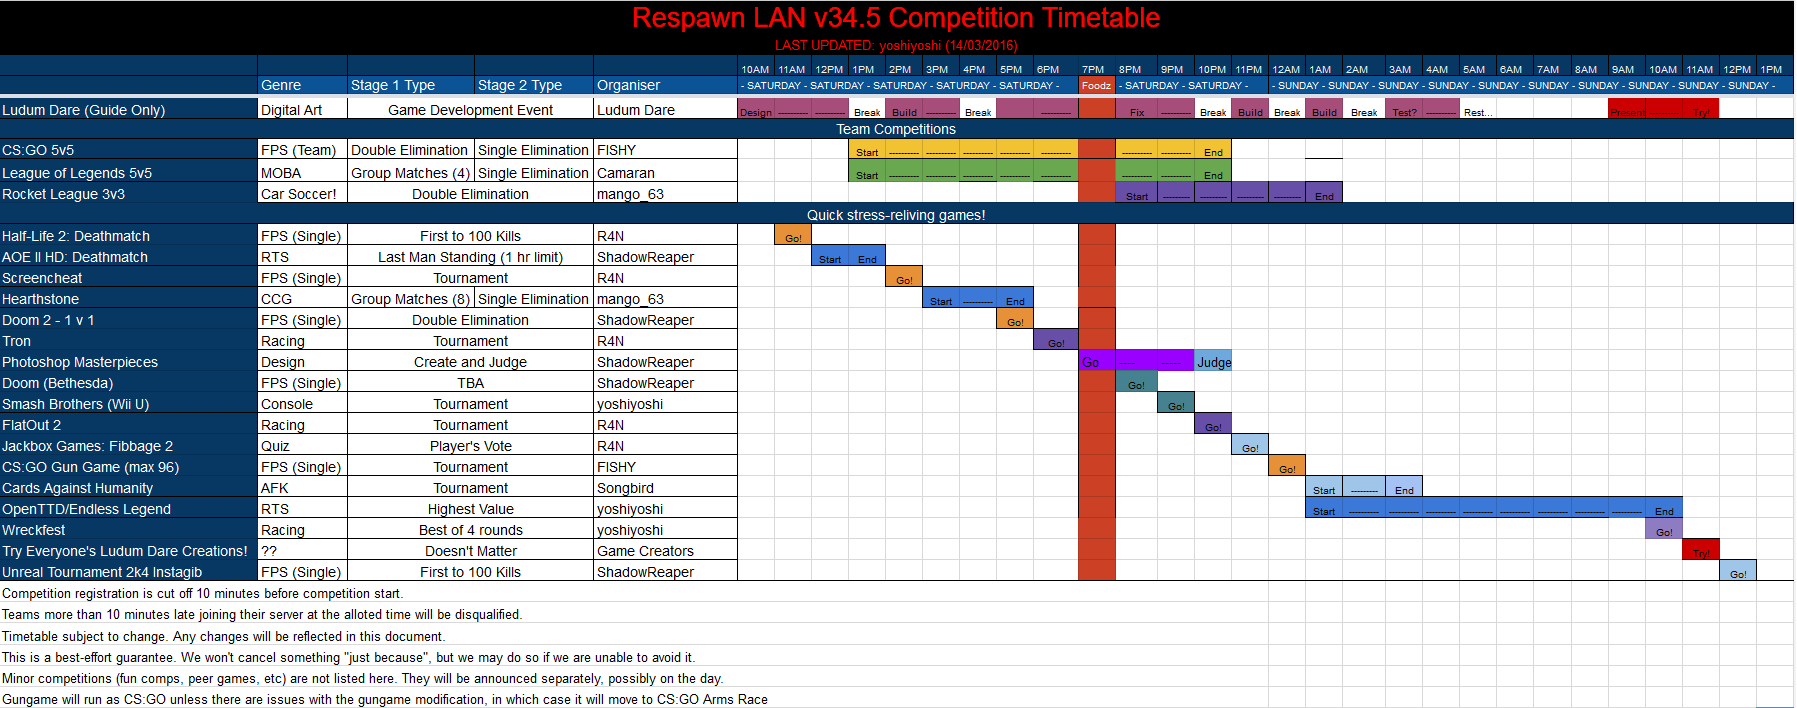 Respawn LAN v34.5 tournament timetable image